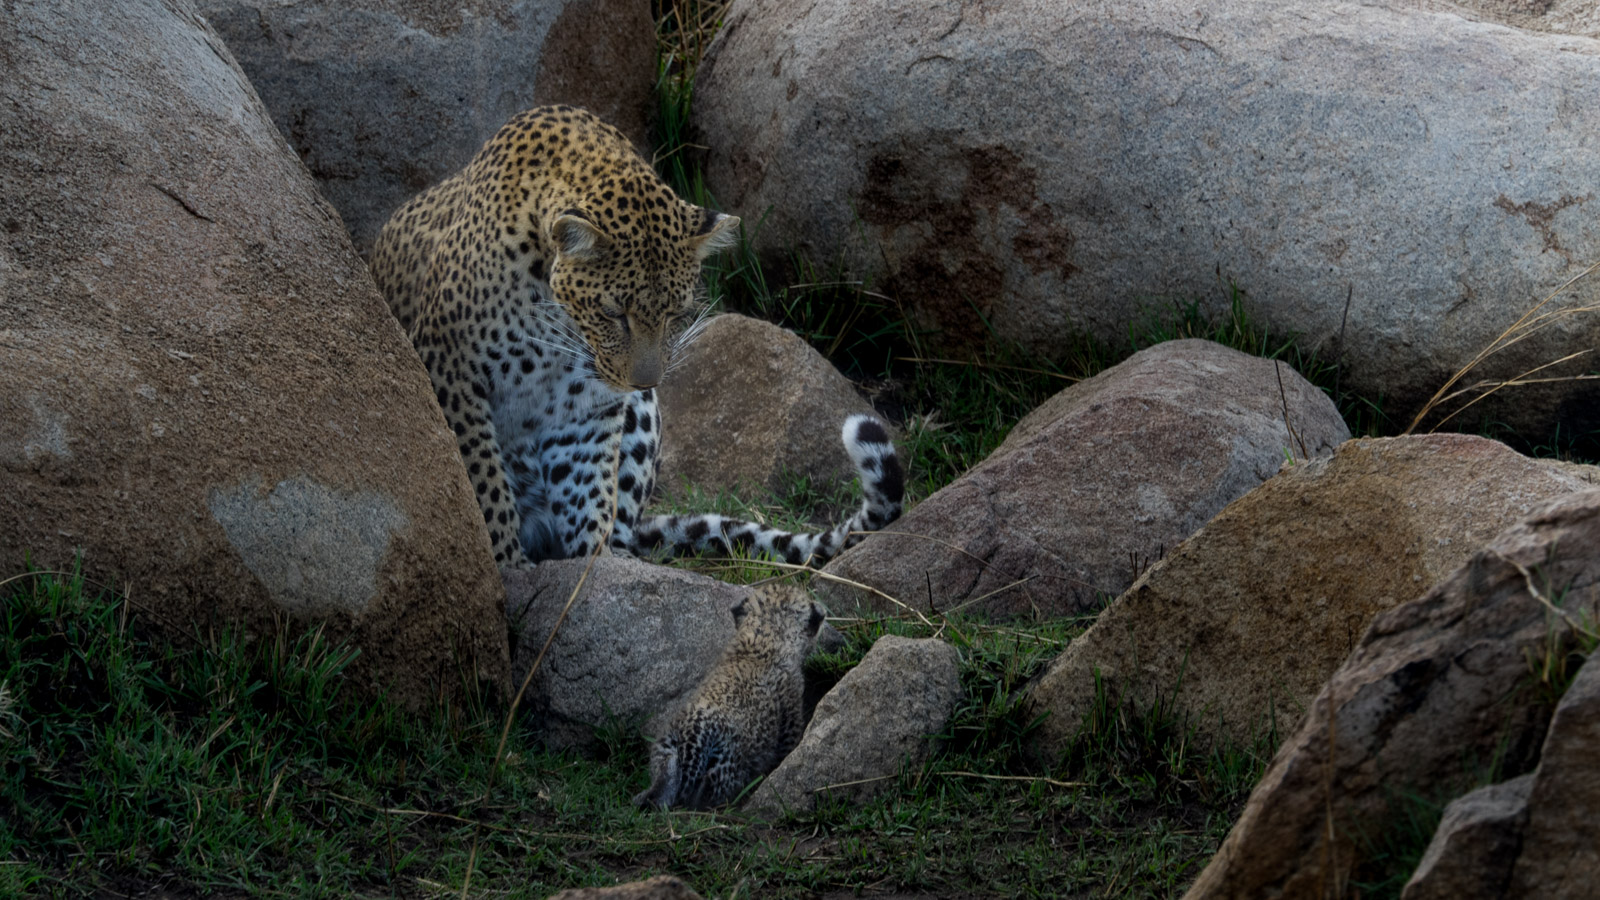 Leopard Looks Over Her Baby Cub